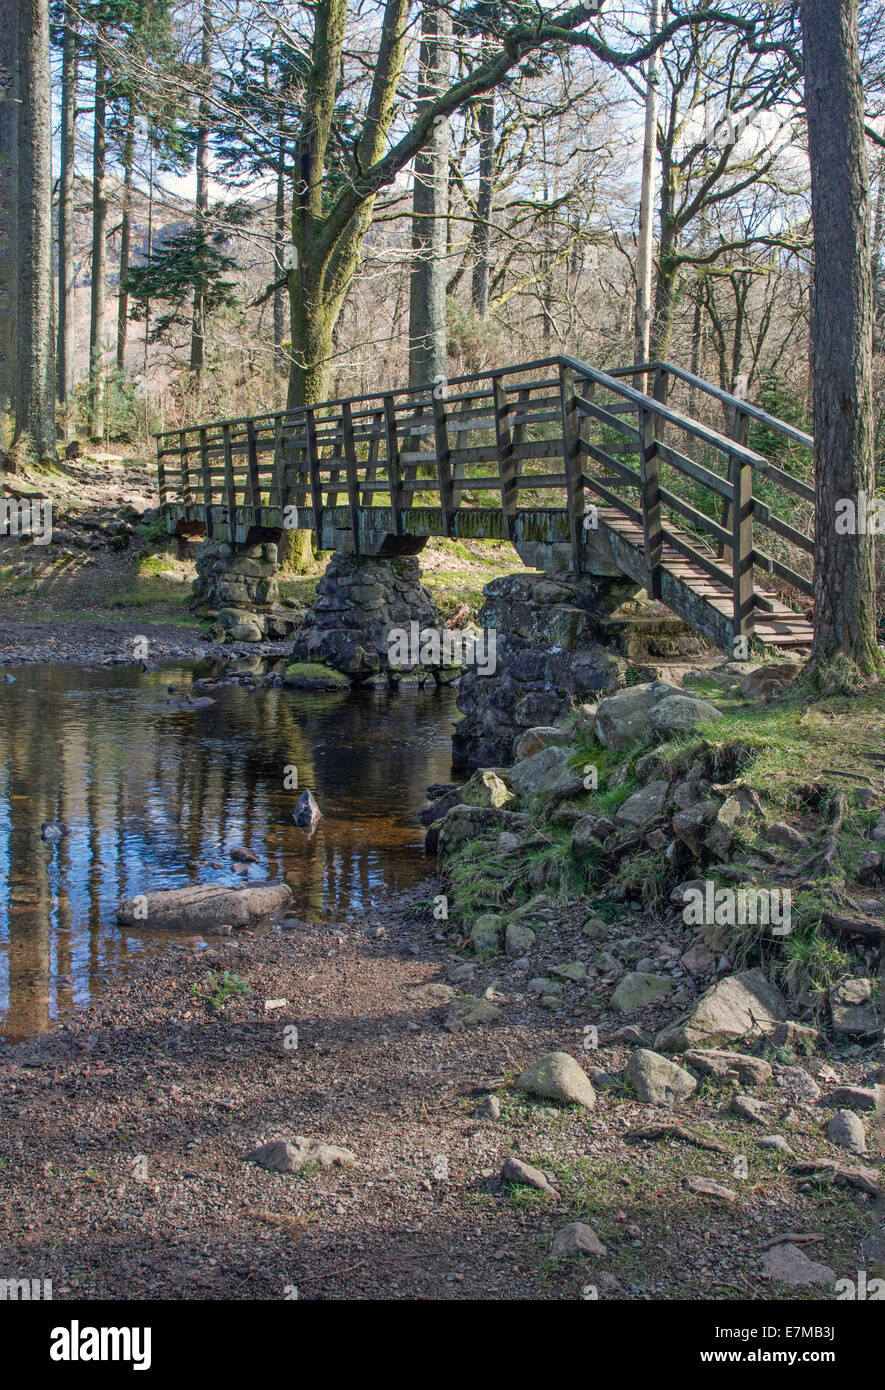 A wooden bridge over a tributary of the River Esk near Boot in the Lake District Cumbria England - Stock Image